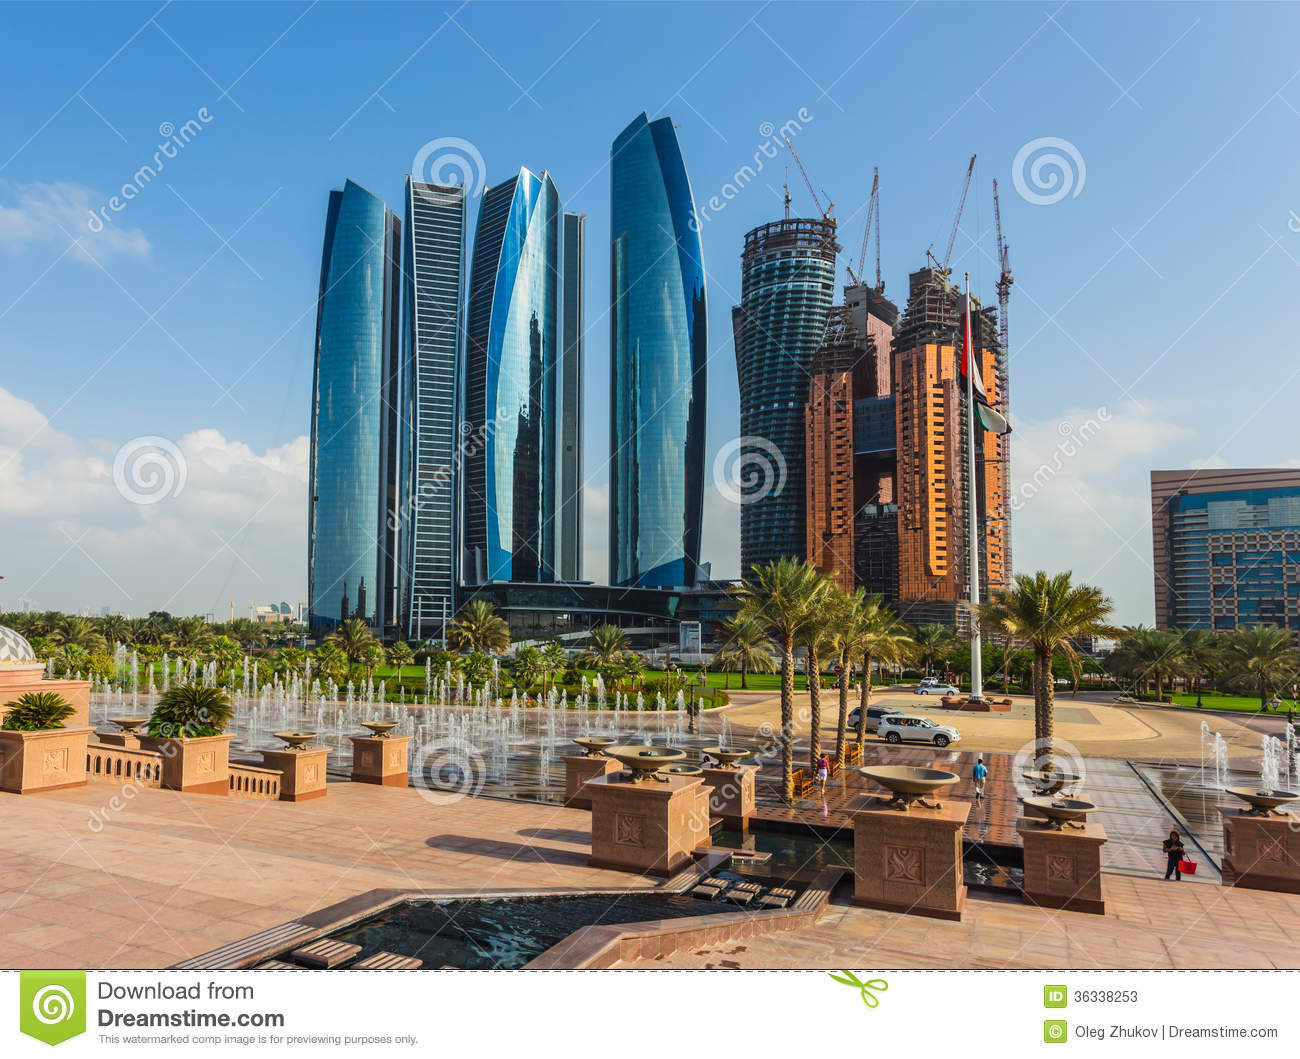 Doctors United Arab Emirates Dhabi Adult In Abu Services